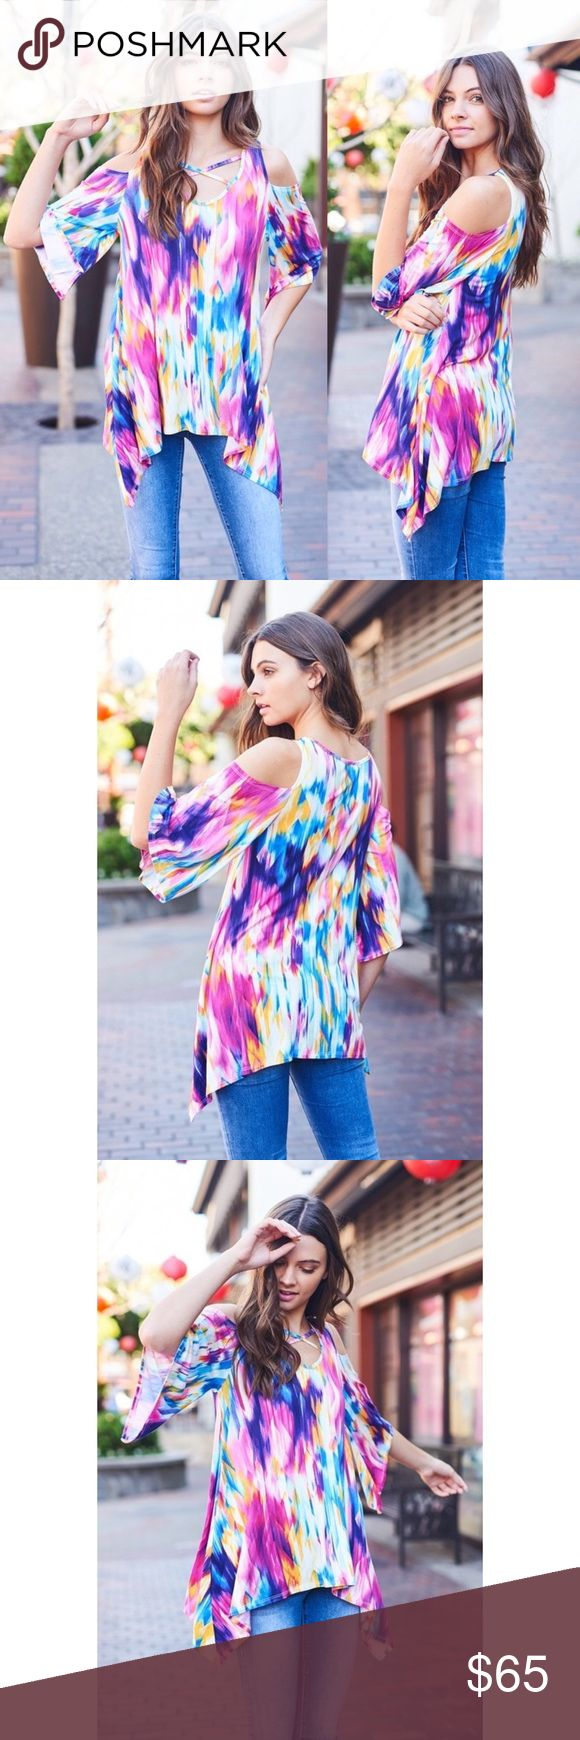 🍭 Watercolor Cold Shoulder Criss Cross Top 🌸 Arriving soon 🌸  🇺🇸 MADE IN USA  💗 Watercolor top featuring cold shoulders and criss cross front.  💗 Color may slightly vary according to device color calibration and lighting (indoor/outdoor/time of day) 💗 Polyester/Spandex  Blend 💗 Hand wash cold water, hang dry Tops